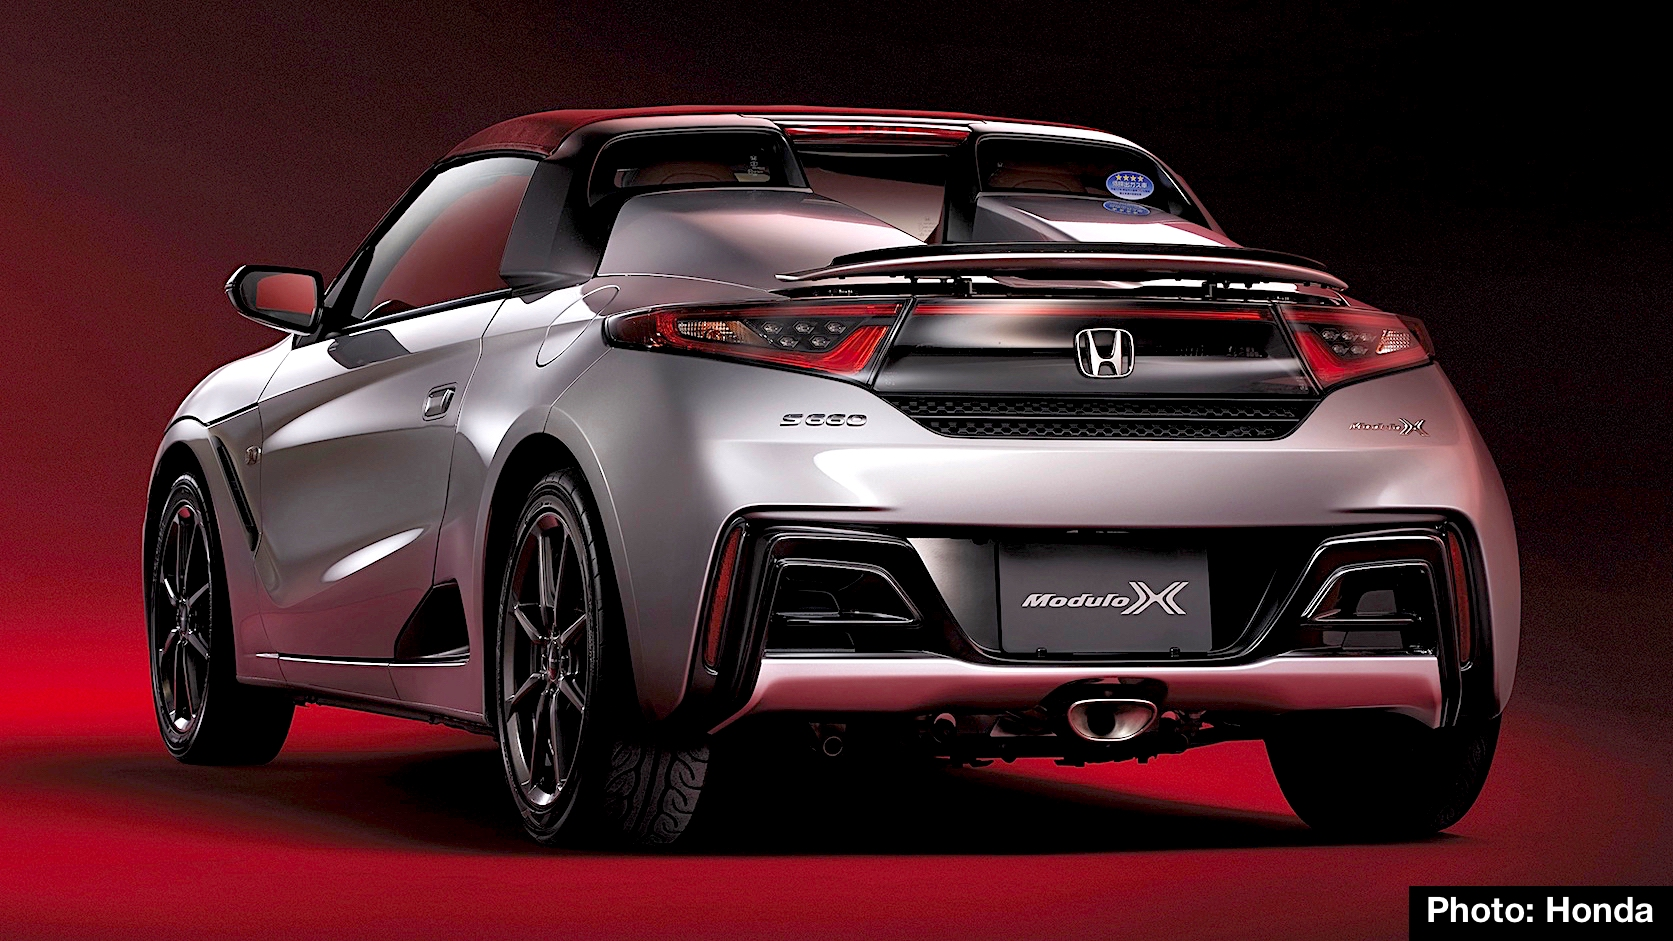 Honda S660 Modulo X Preview Customizing The Mid Engine Roadster In